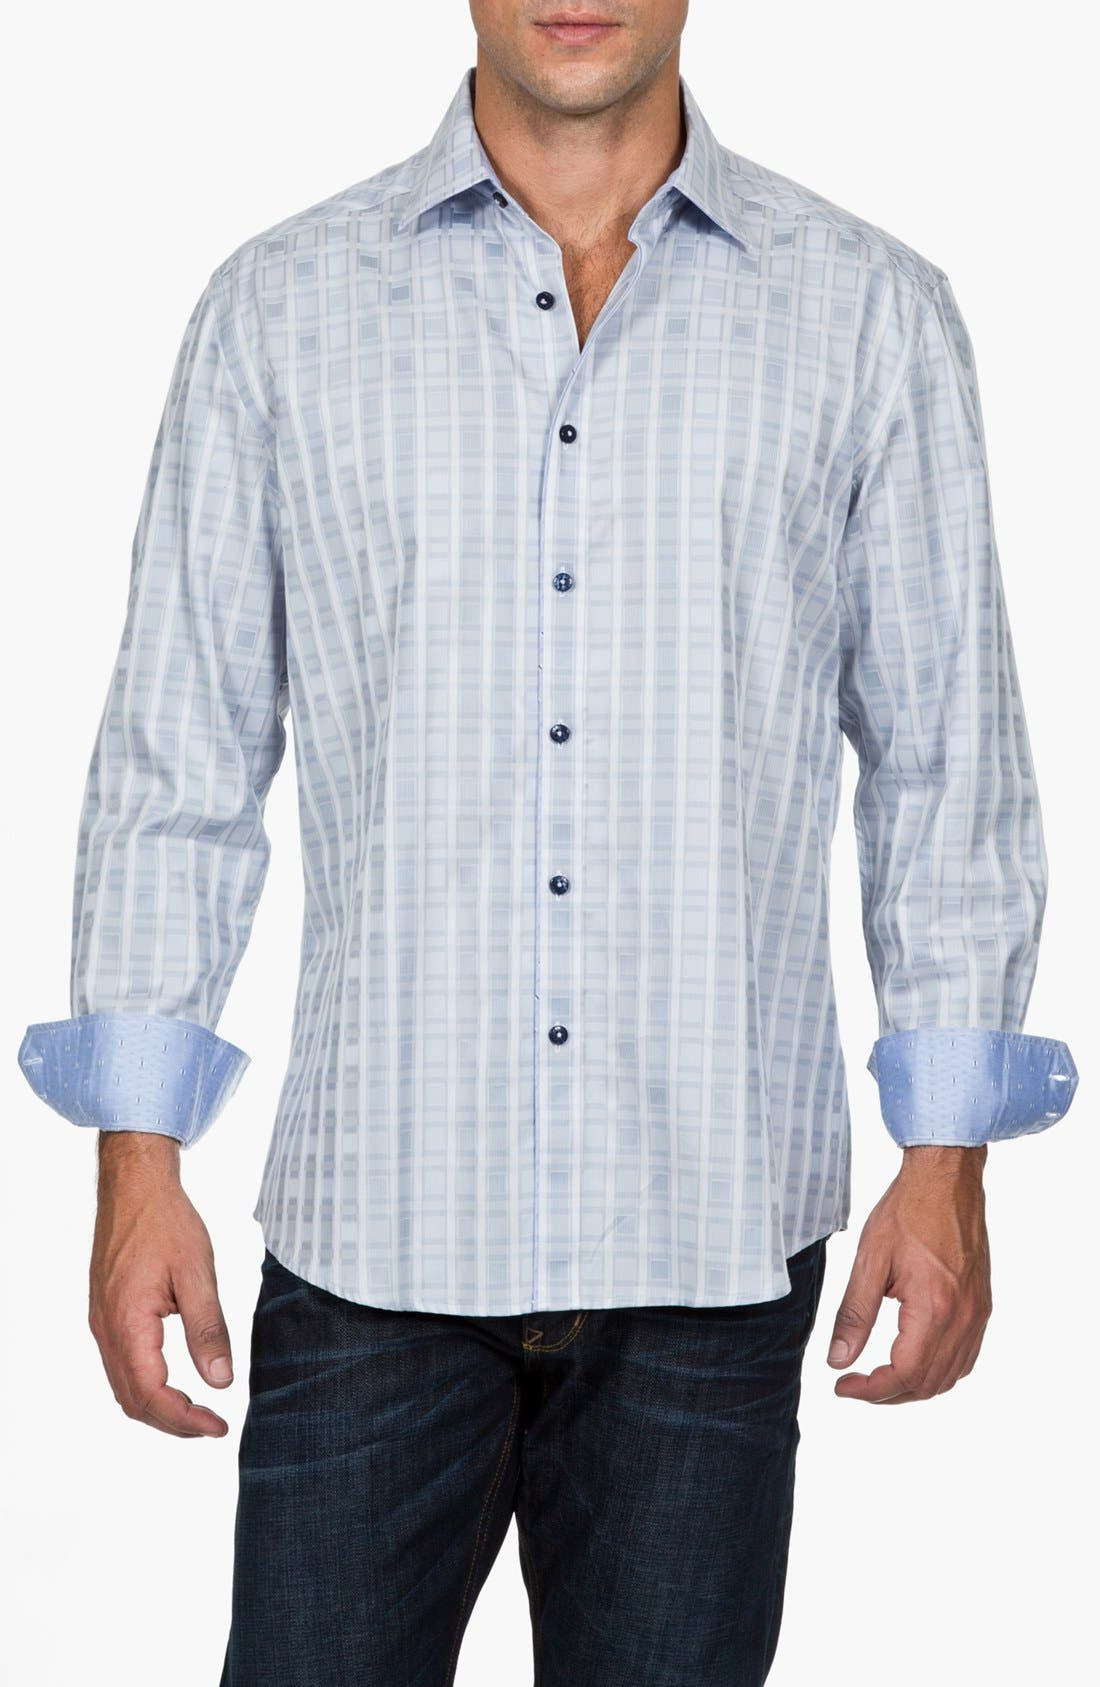 Main Image - Zagiri Regular Fit Sport Shirt